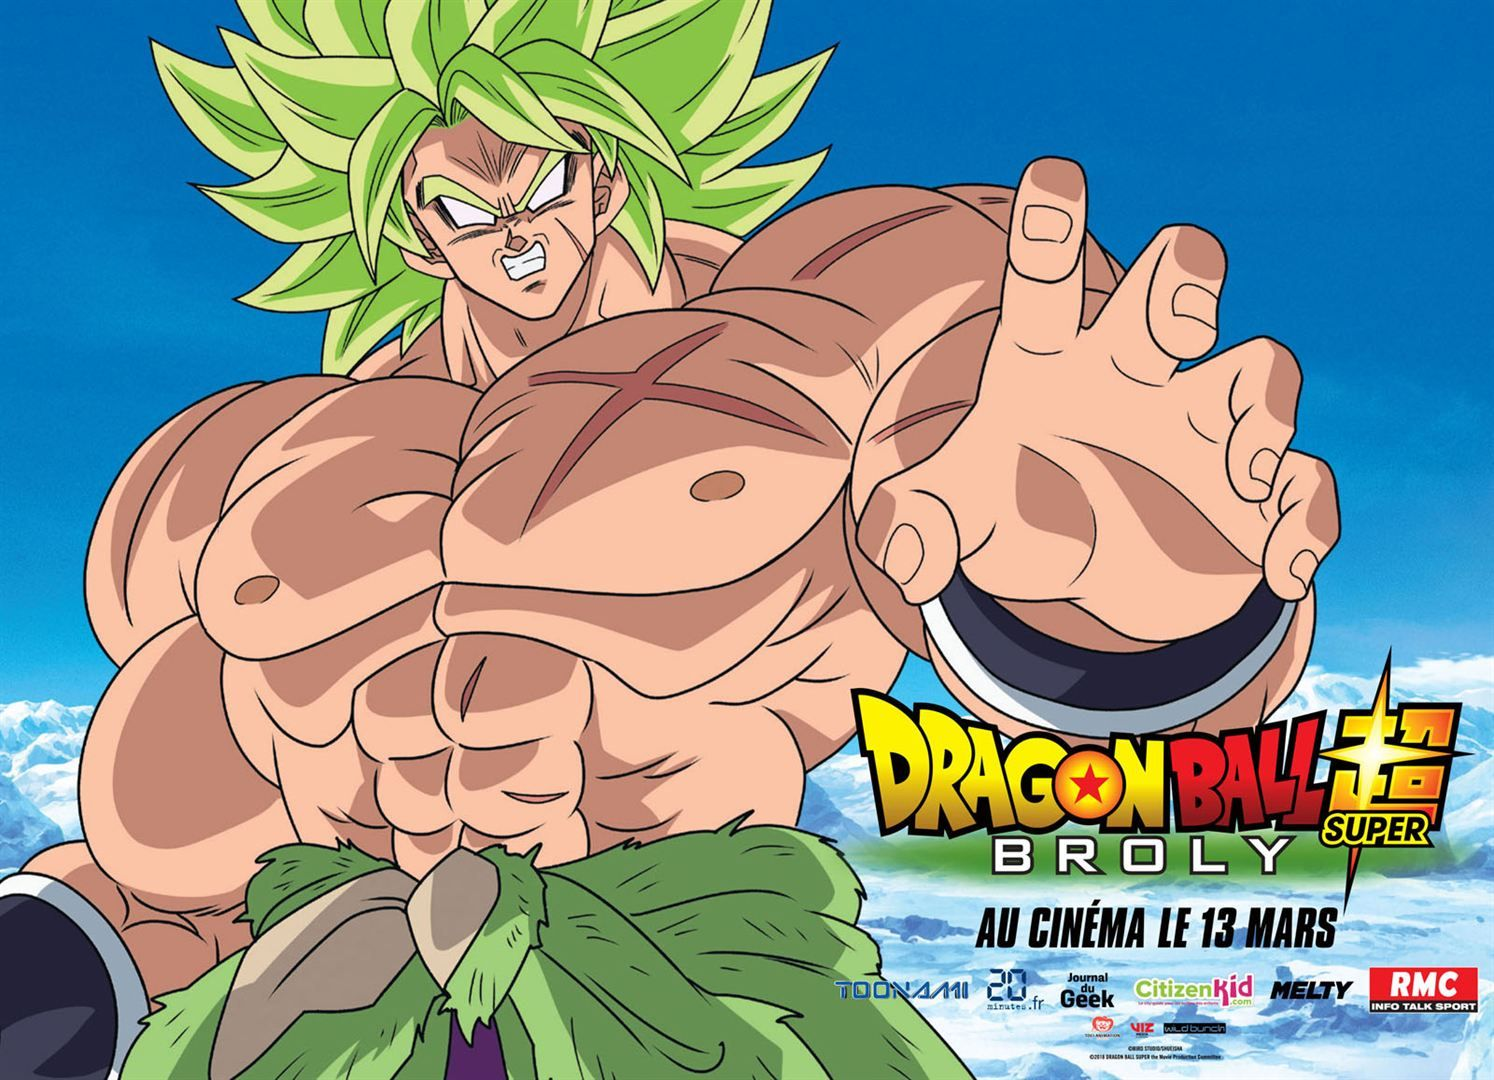 Dragon ball super broly affiche fr 04